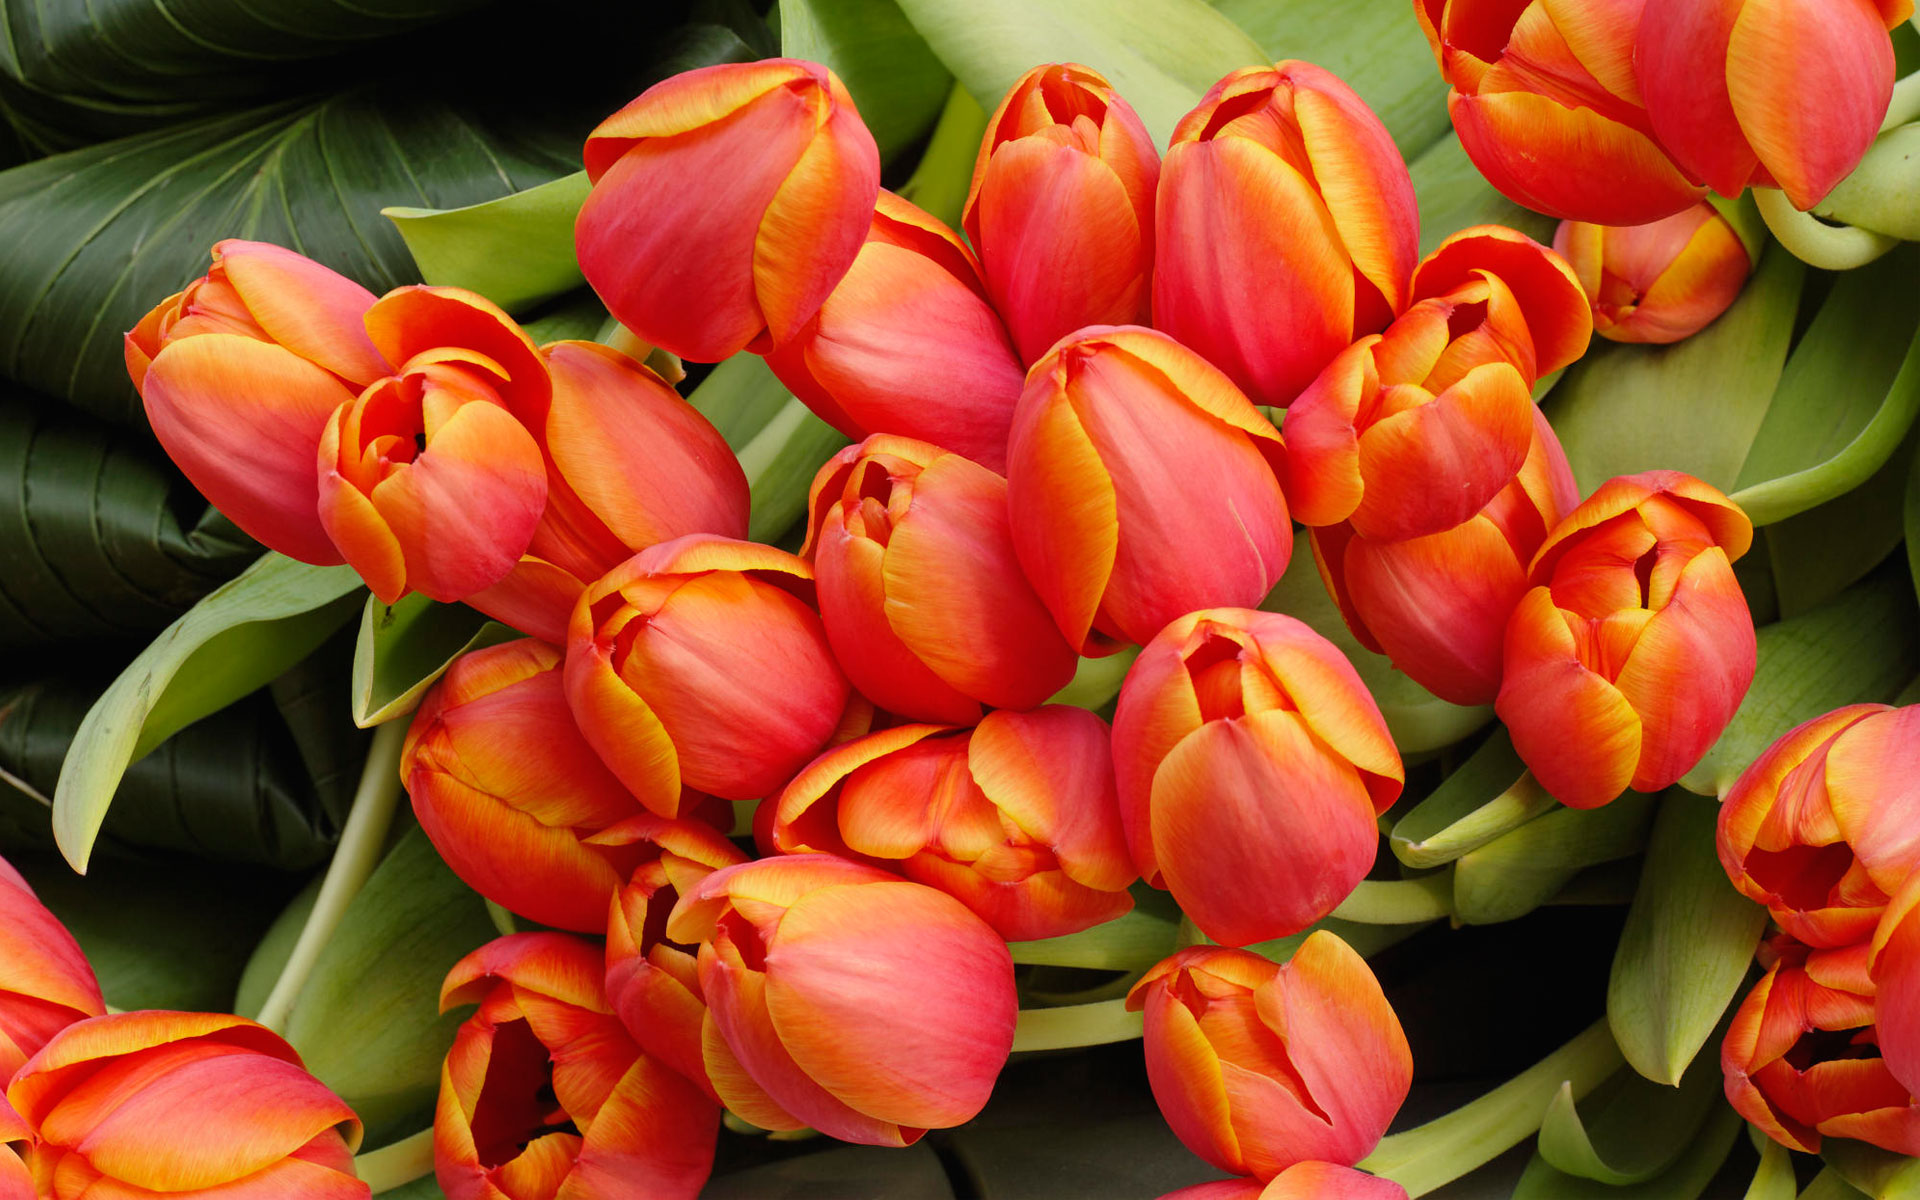 Tulip Flowers Arrangement